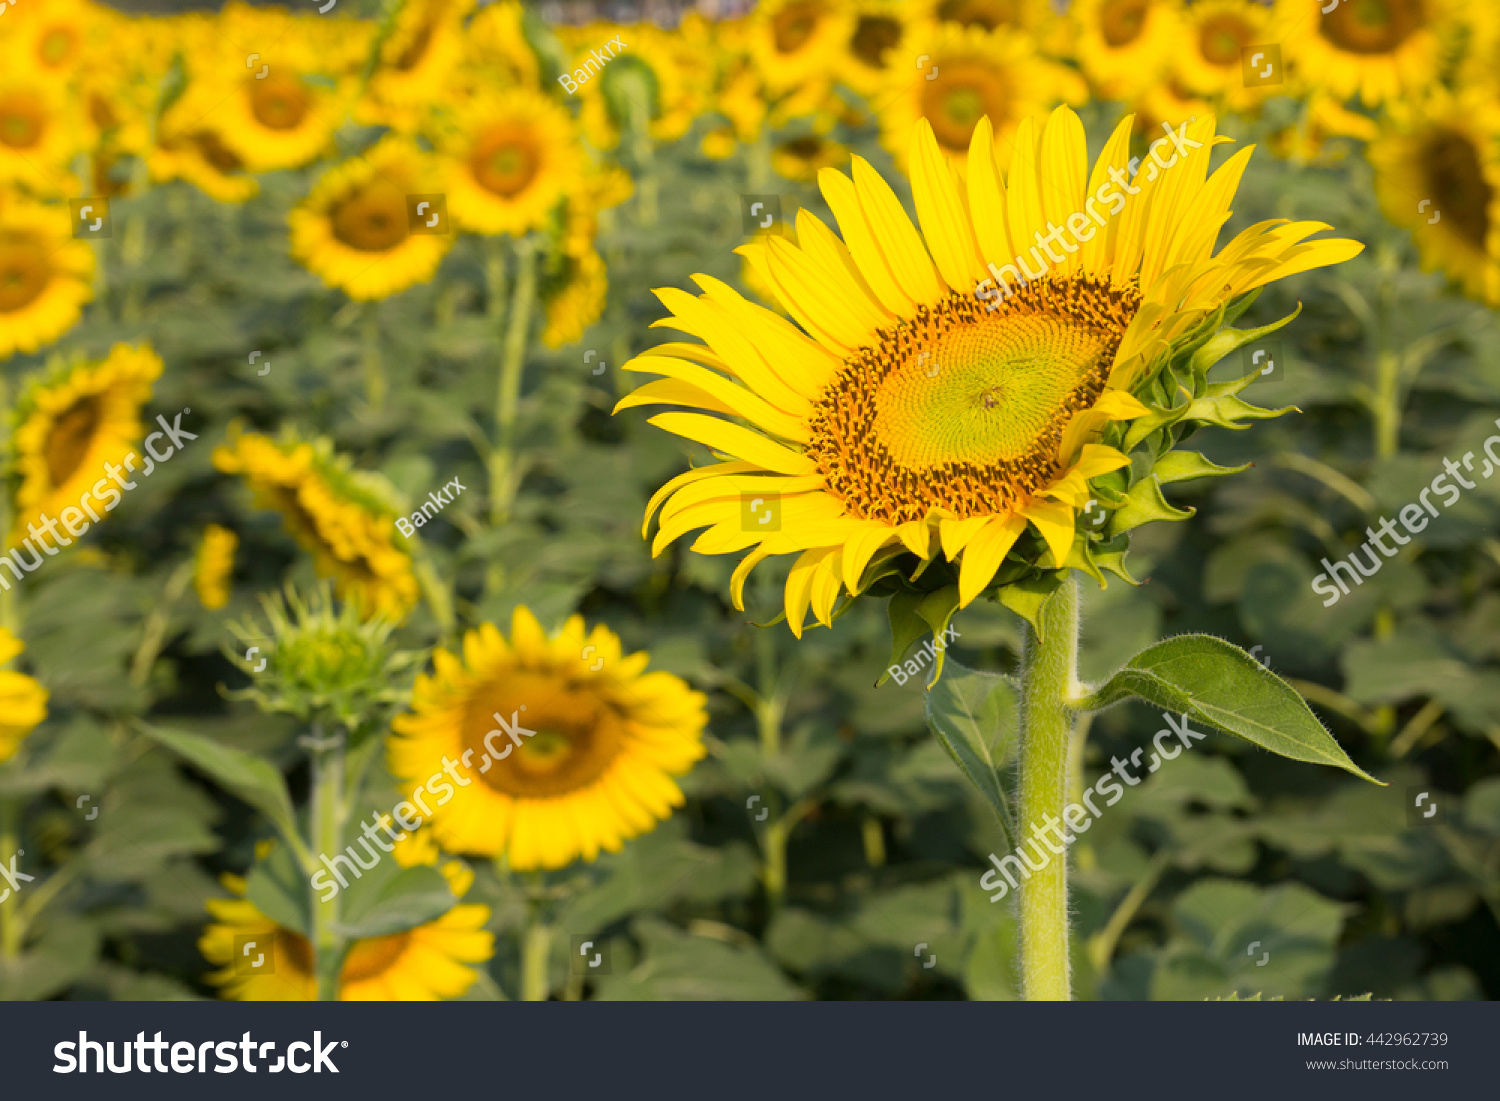 Beautiful sunflower field  #442962739